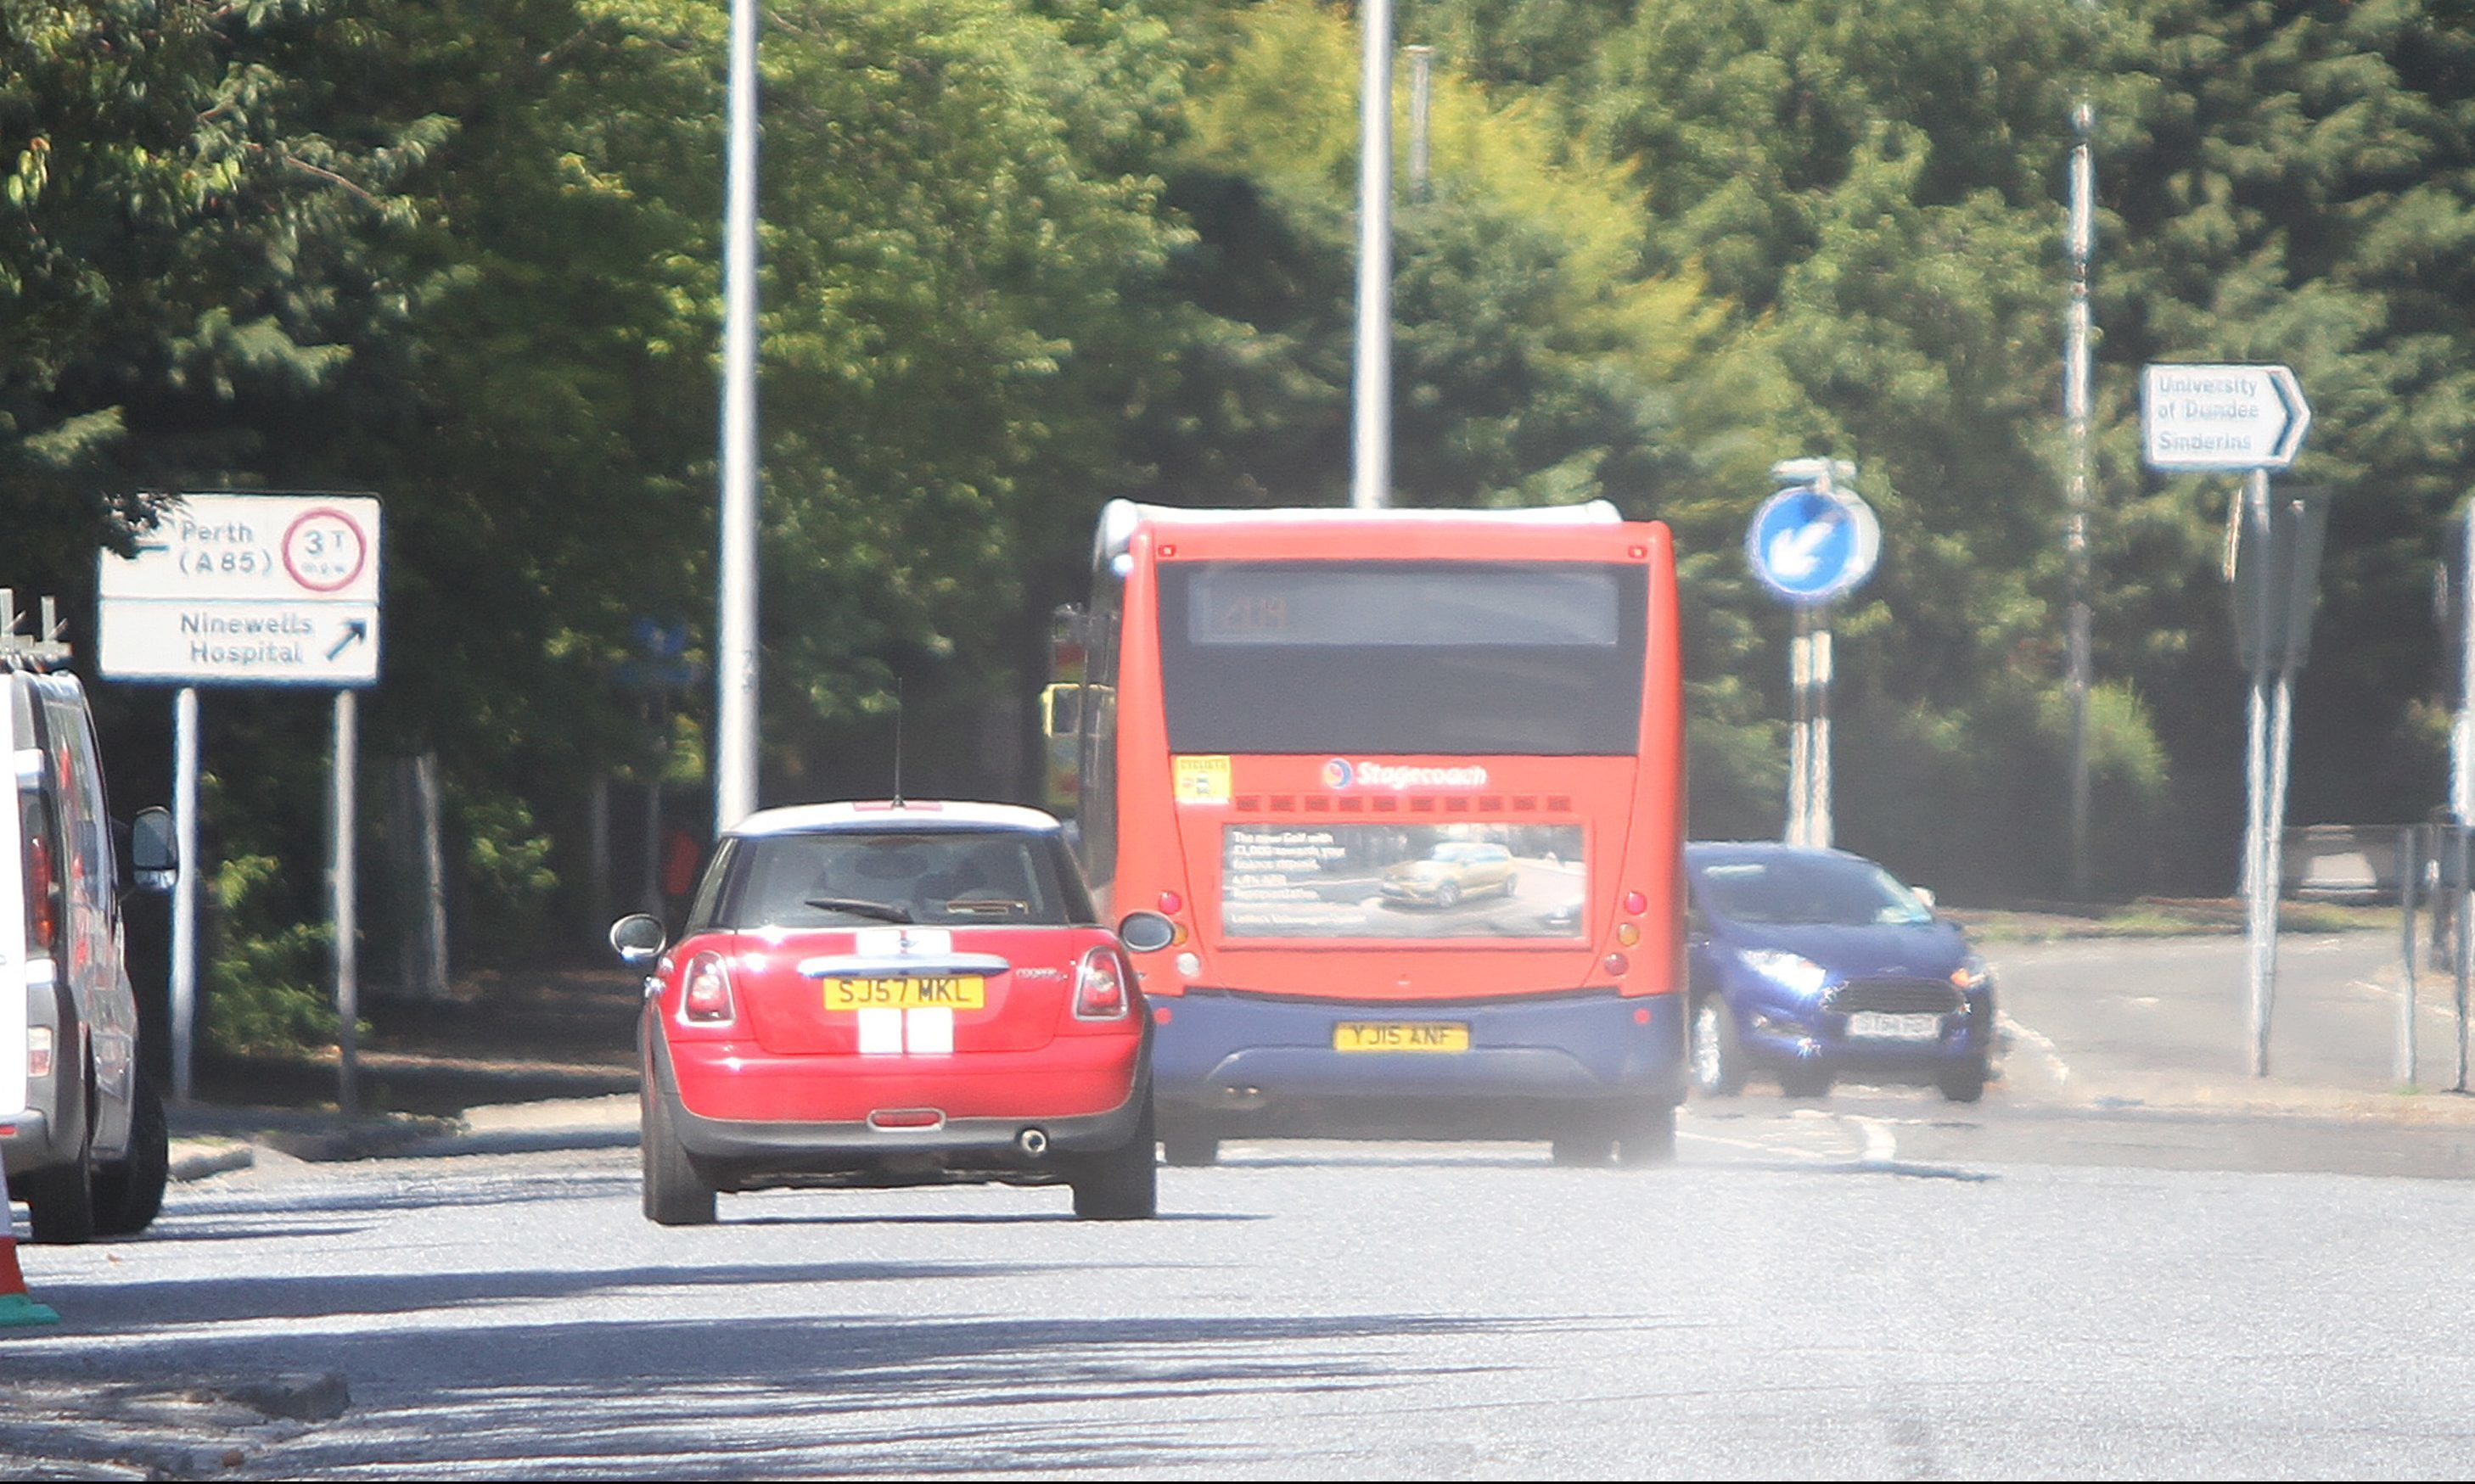 Dust continues to plague a section of Perth Road, weeks after resurfacing work was completed.